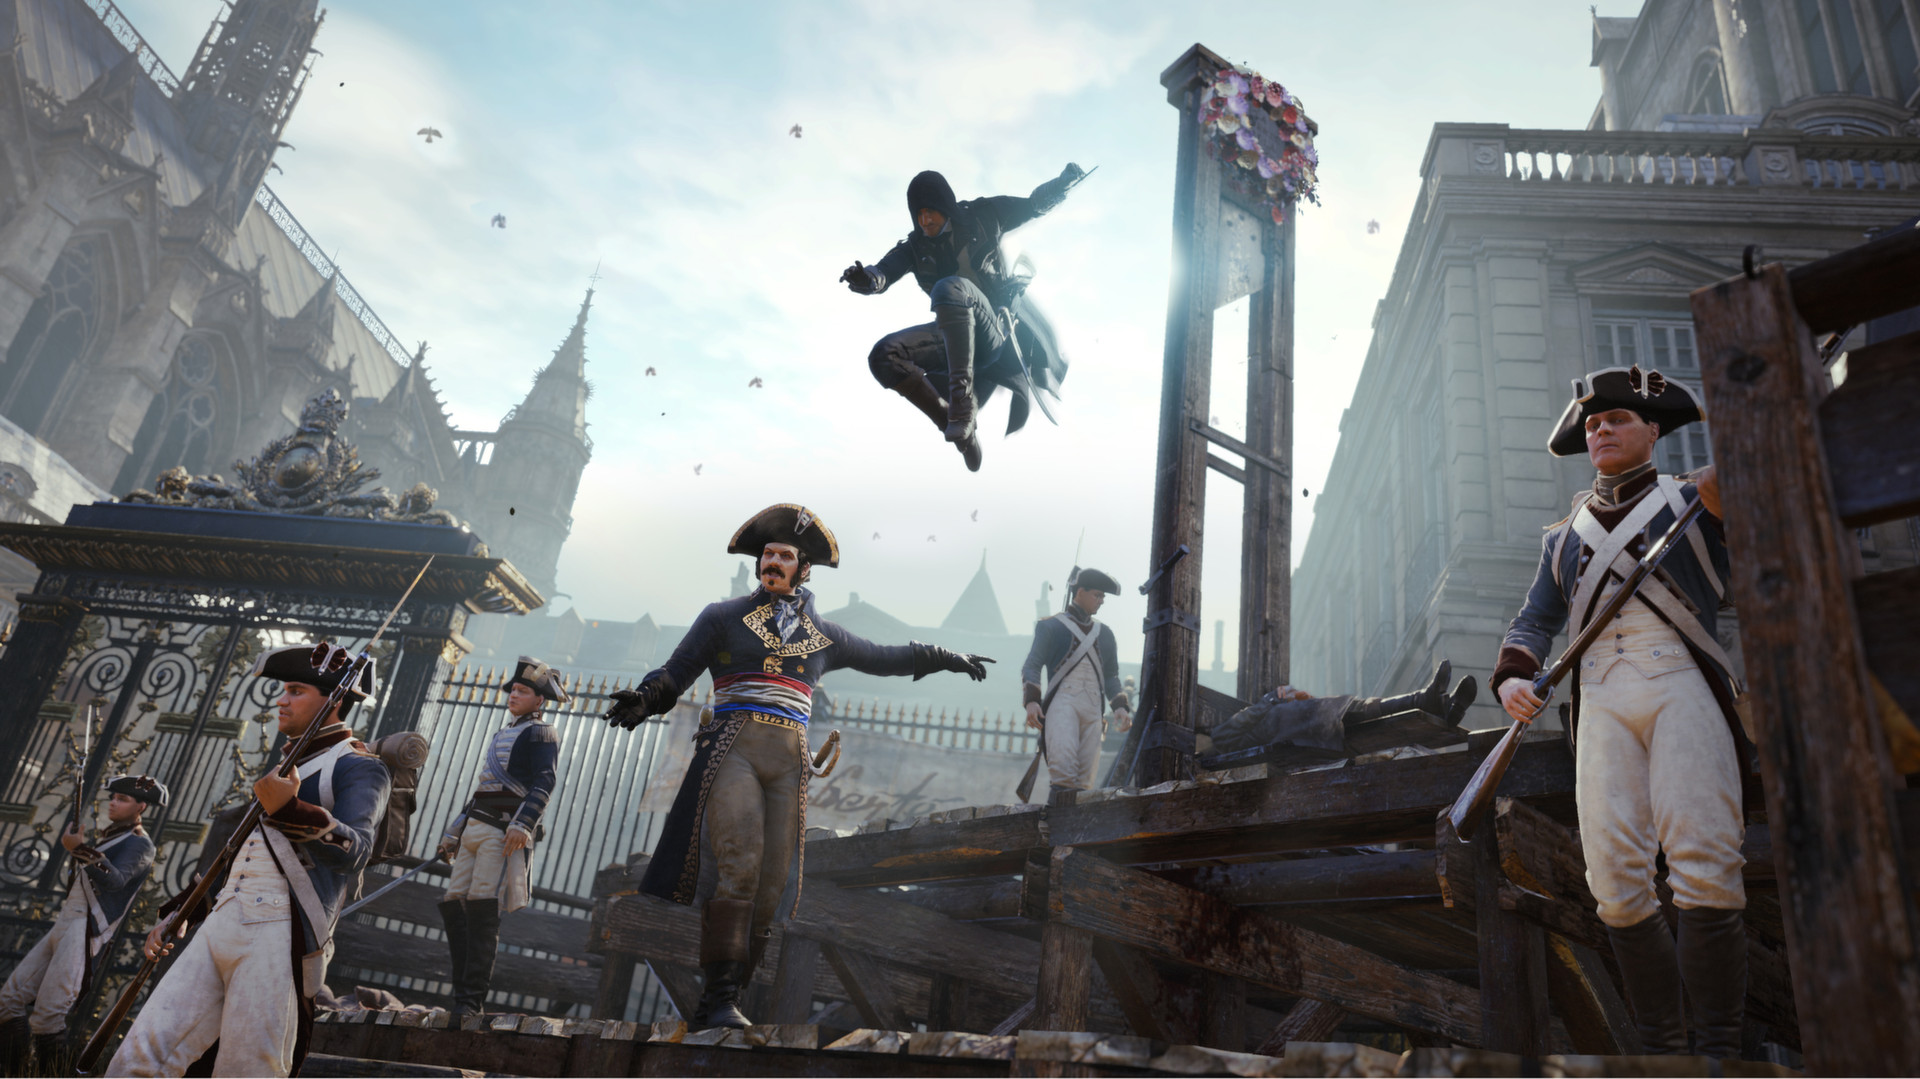 download assassin's creed unity complete ultimate edition repack by corepack iso google fire drive singlelink direct link one ftp link magnet extra tracker leech torrent thepiratebay kickass torrents leeching